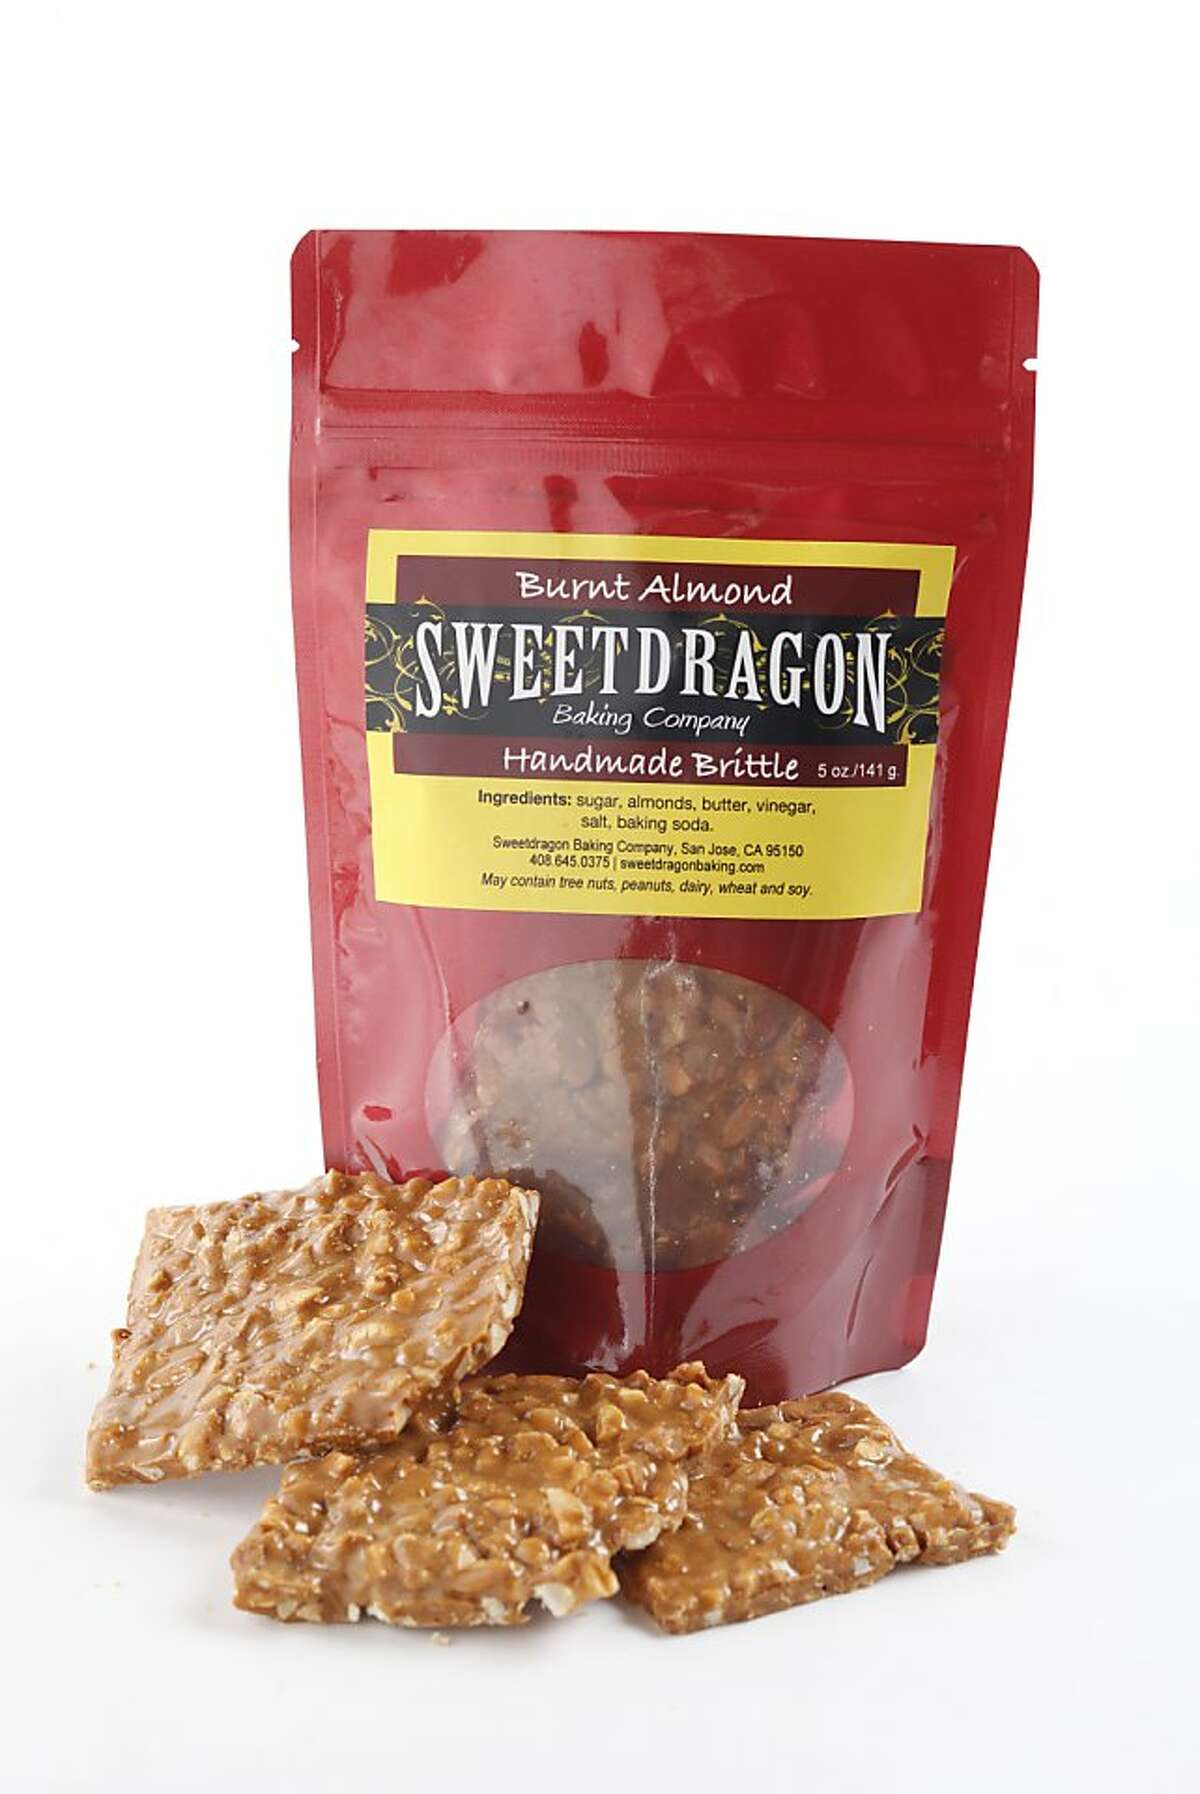 Sweet Dragon Handmade Brittle (made in San Jose) as seen in San Francisco on Wednesday, November 27, 2013.